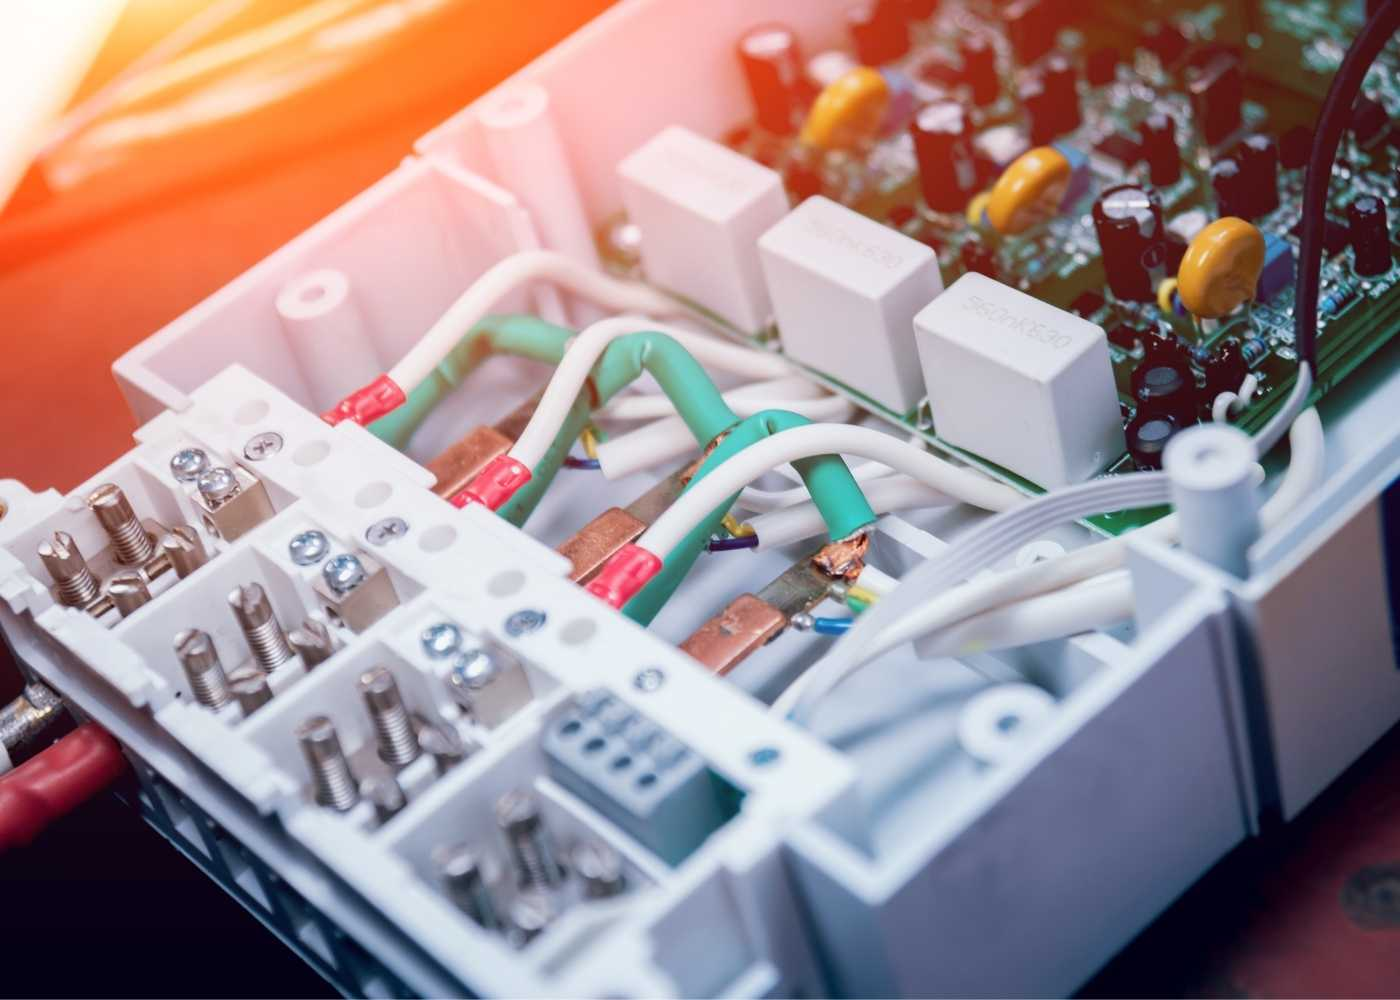 Landlords electrical certificate legal requirement